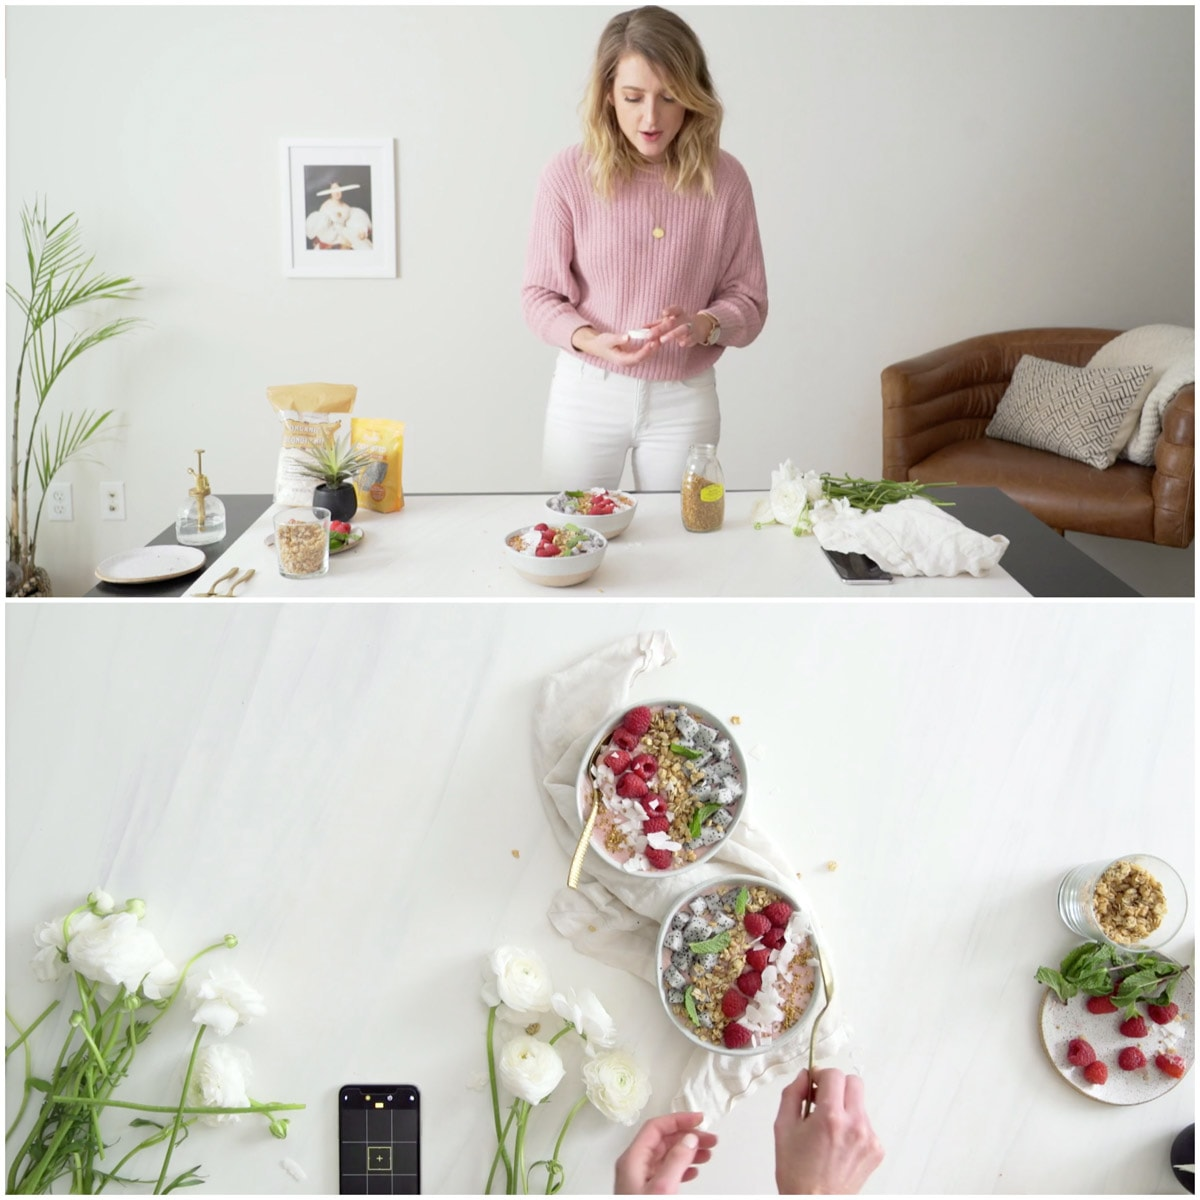 A collage of two images showing food styling of a smoothie bowl.